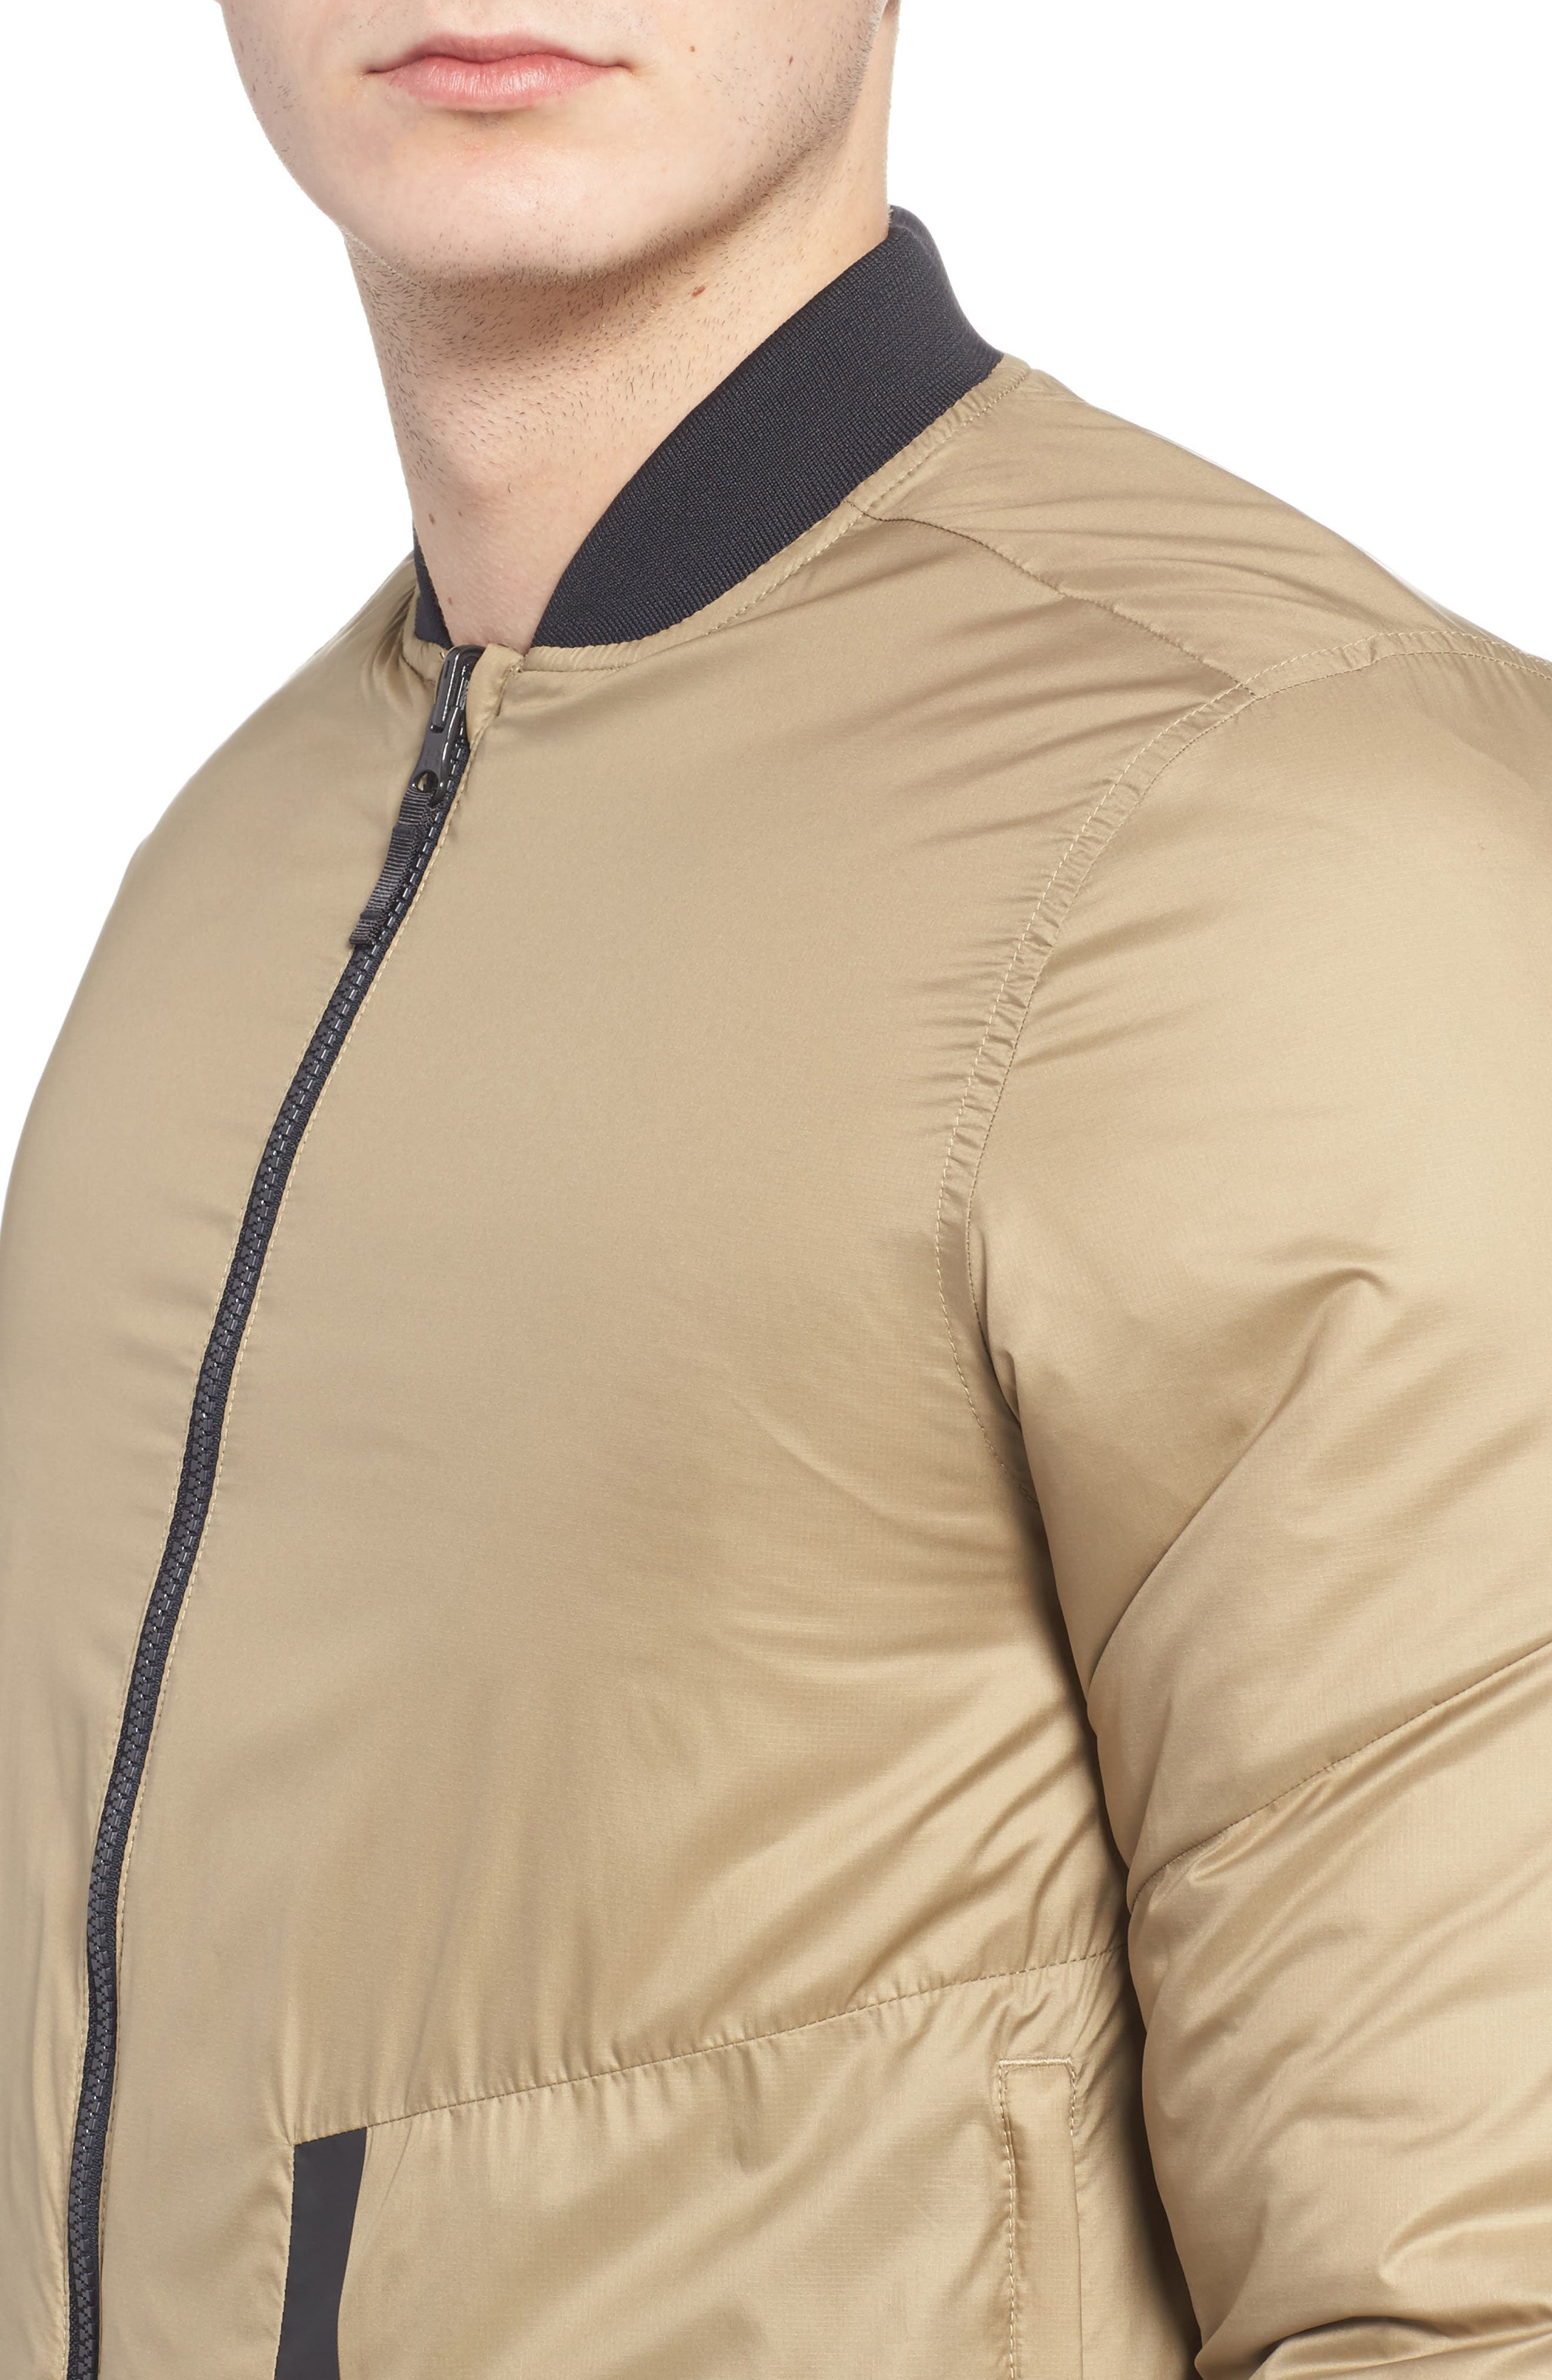 Sportstyle Reactor Reversible Bomber Jacket,                             Alternate thumbnail 4, color,                             Canvas / Bay Brown / Black